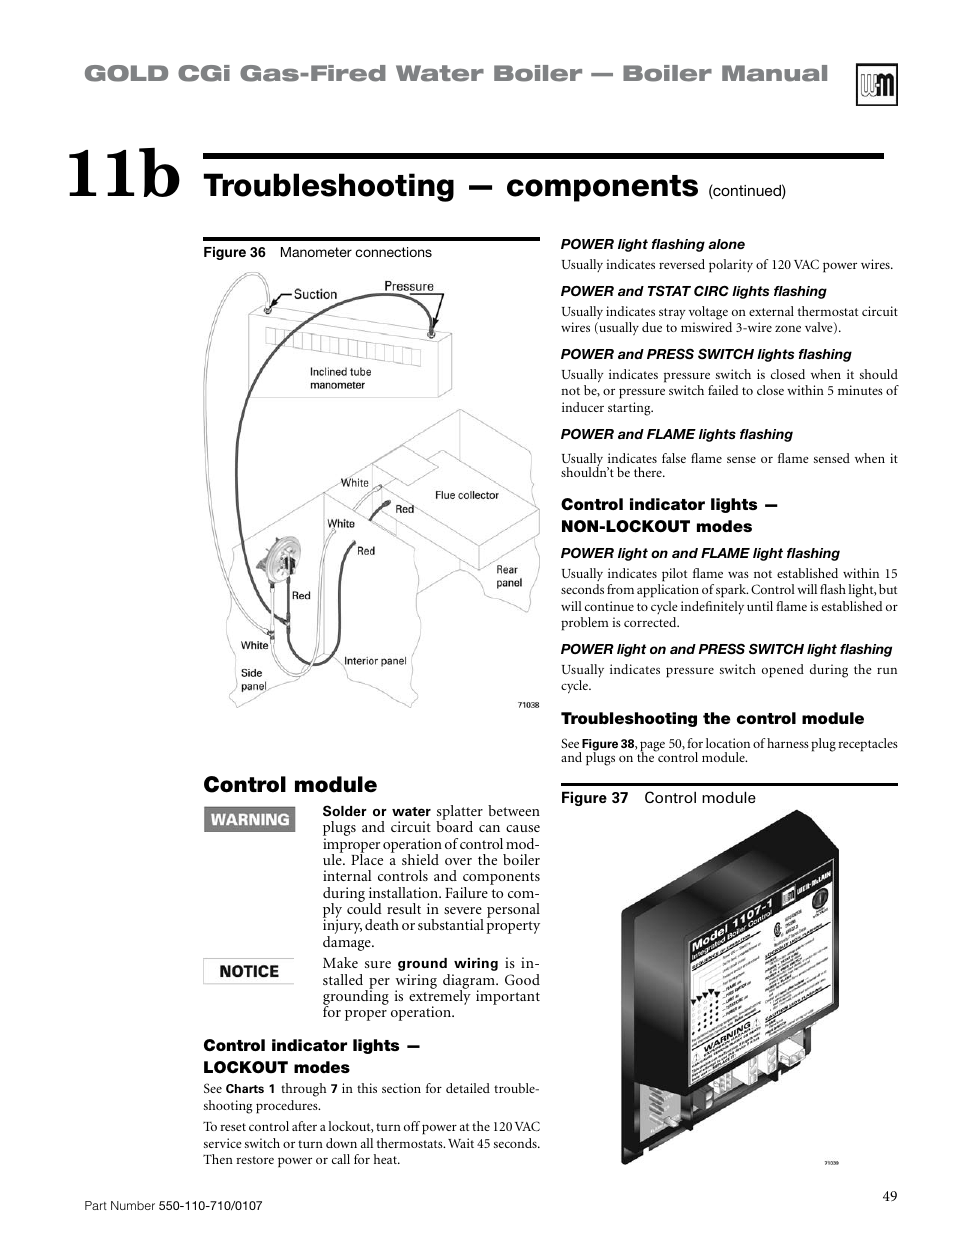 hight resolution of troubleshooting components gold cgi gas fired water boiler boiler manual control module weil mclain gold cgi series 2 user manual page 49 68